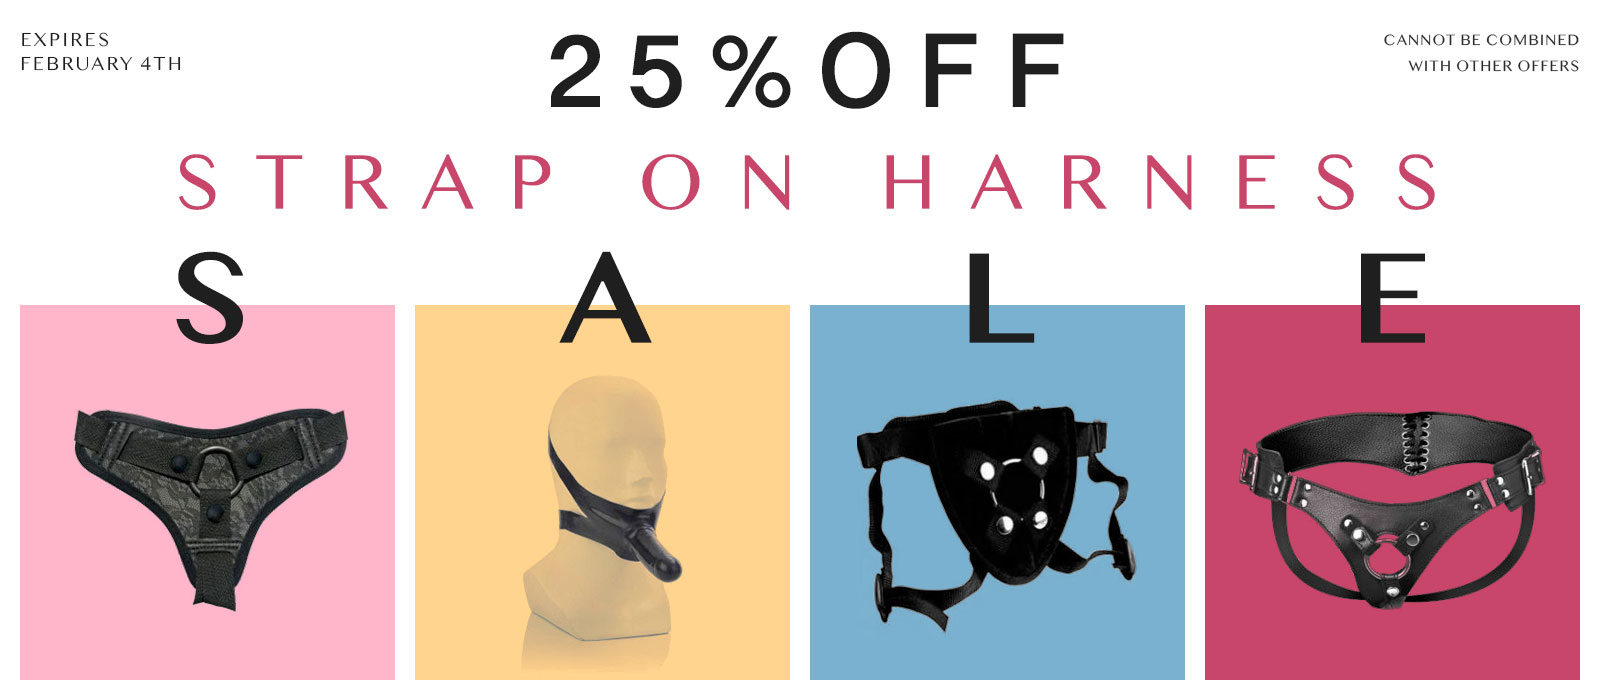 Leather Strap On Harness sale 25% off